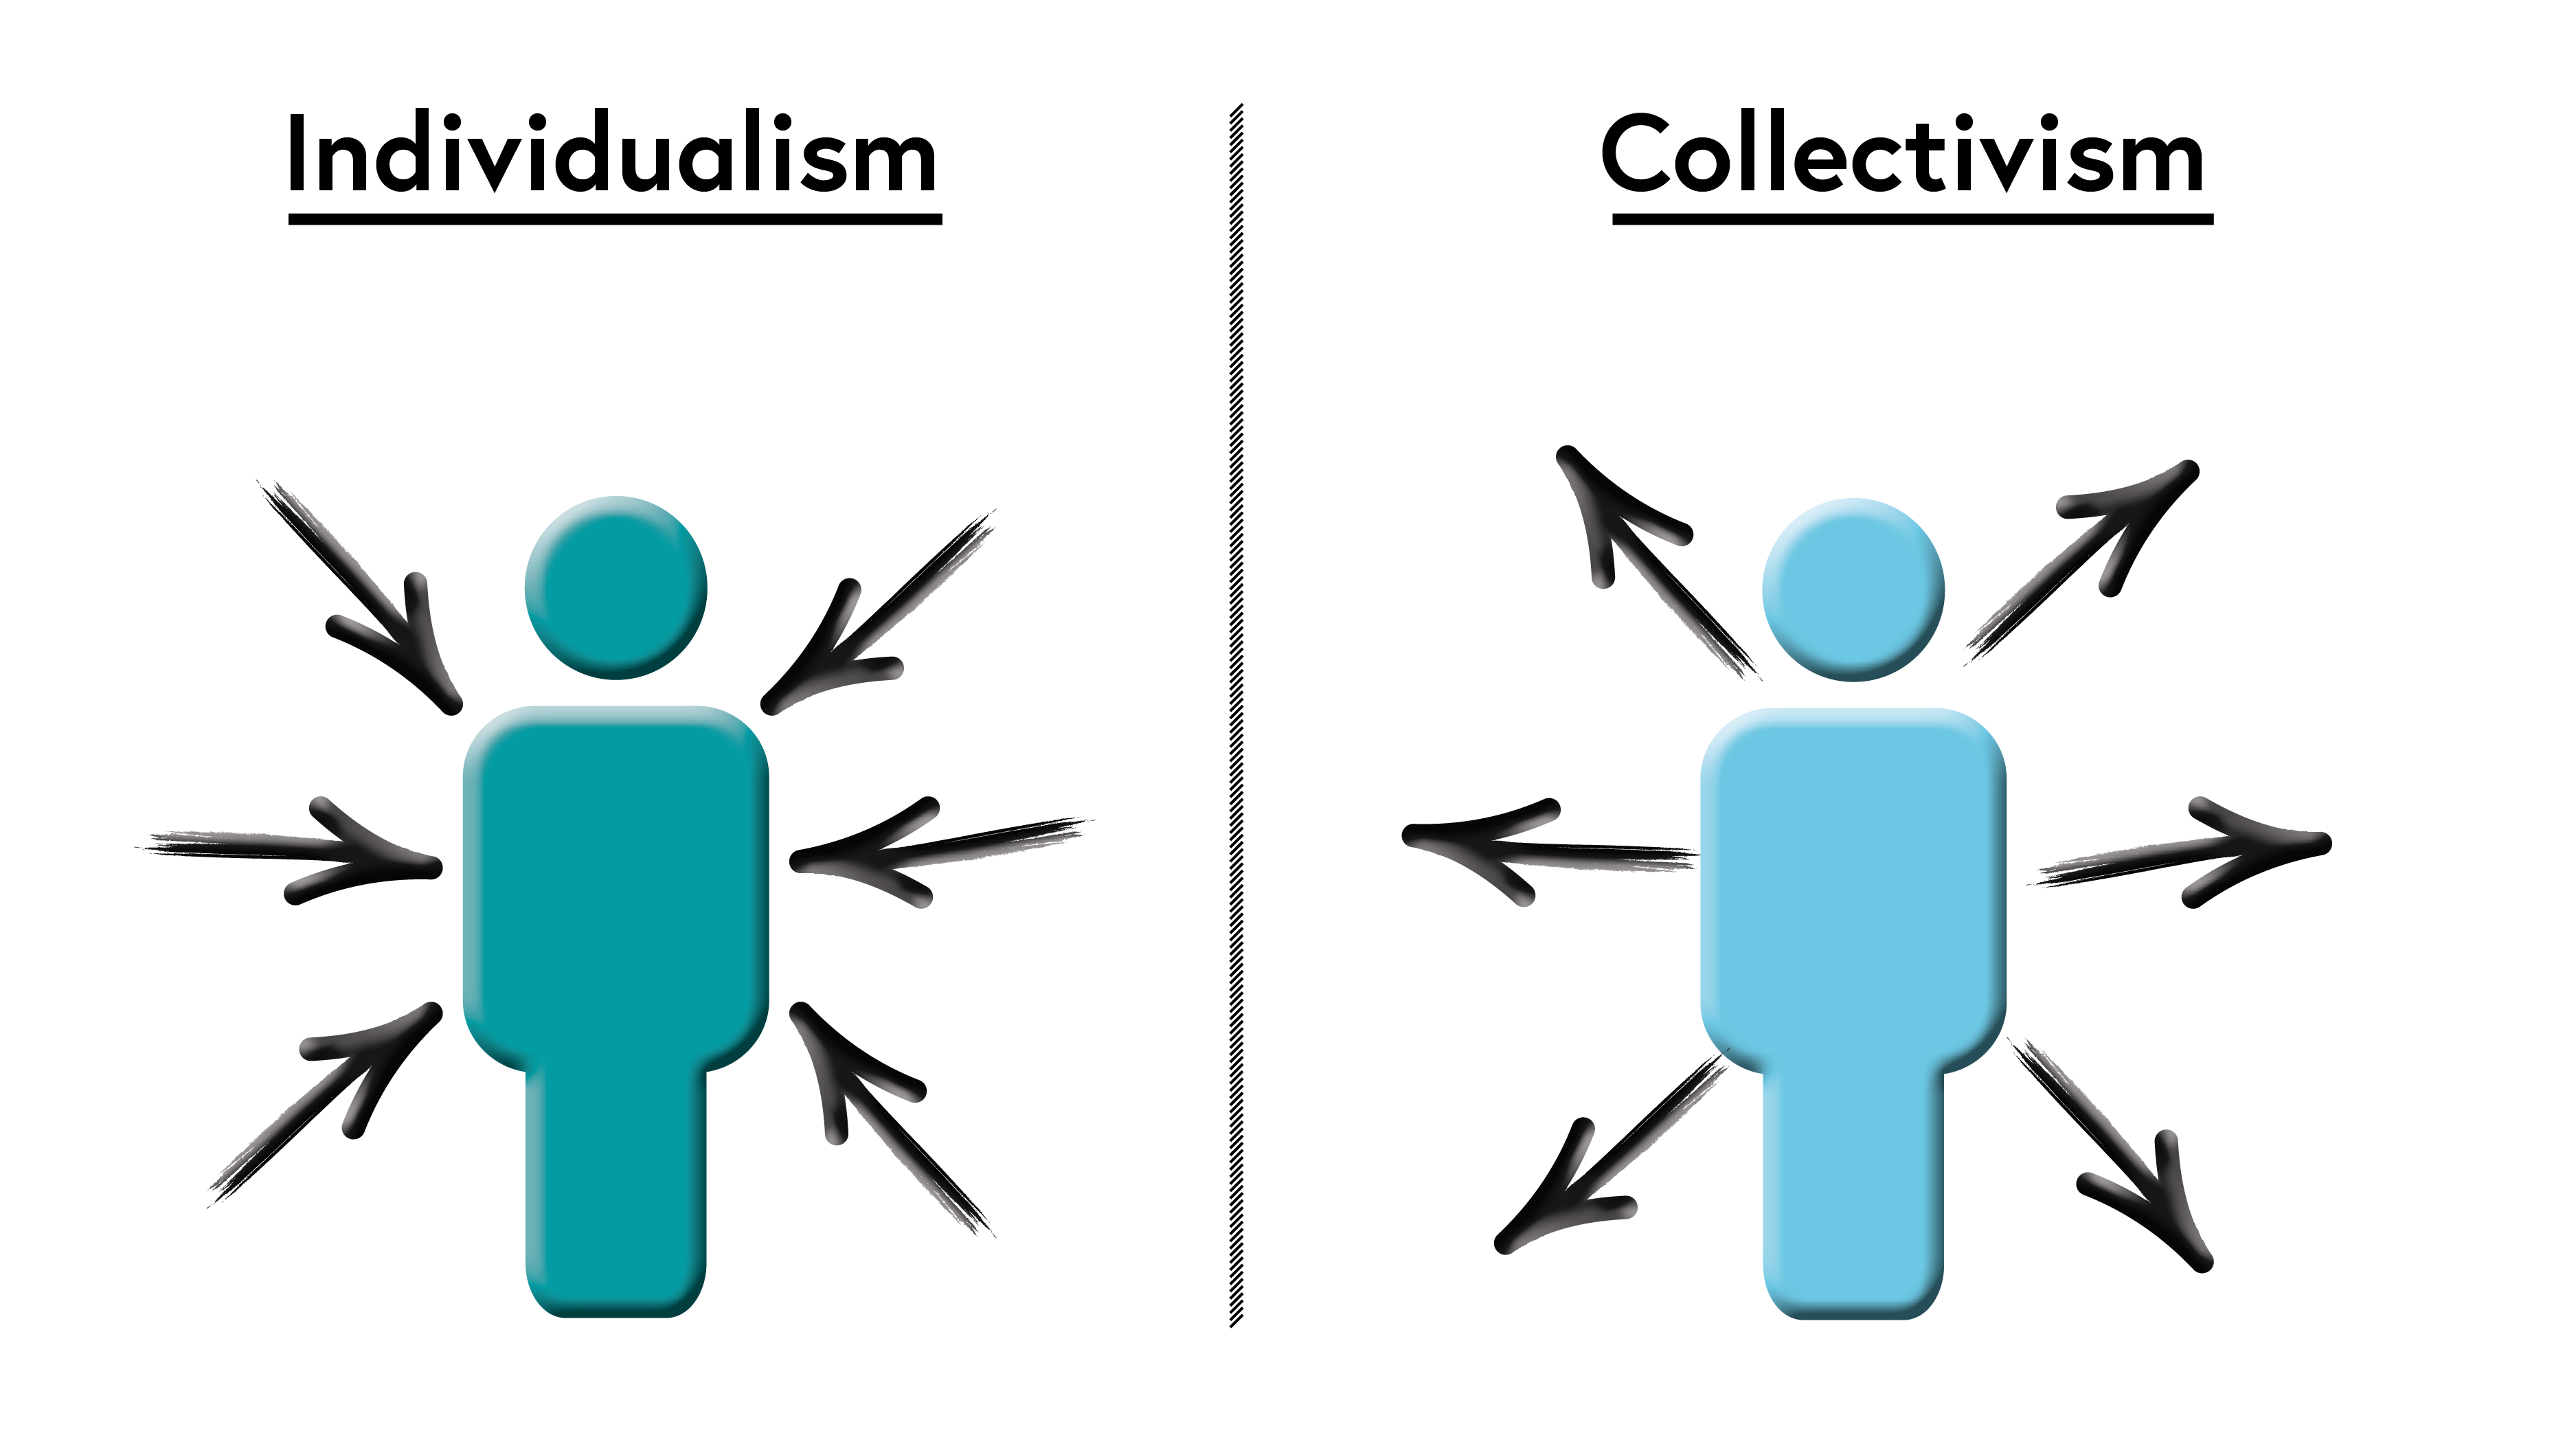 Representations of individualism and collectivism. Individualism: arrows pointing towards the human individual. Collectivism: arrows pointing away from the human individual.